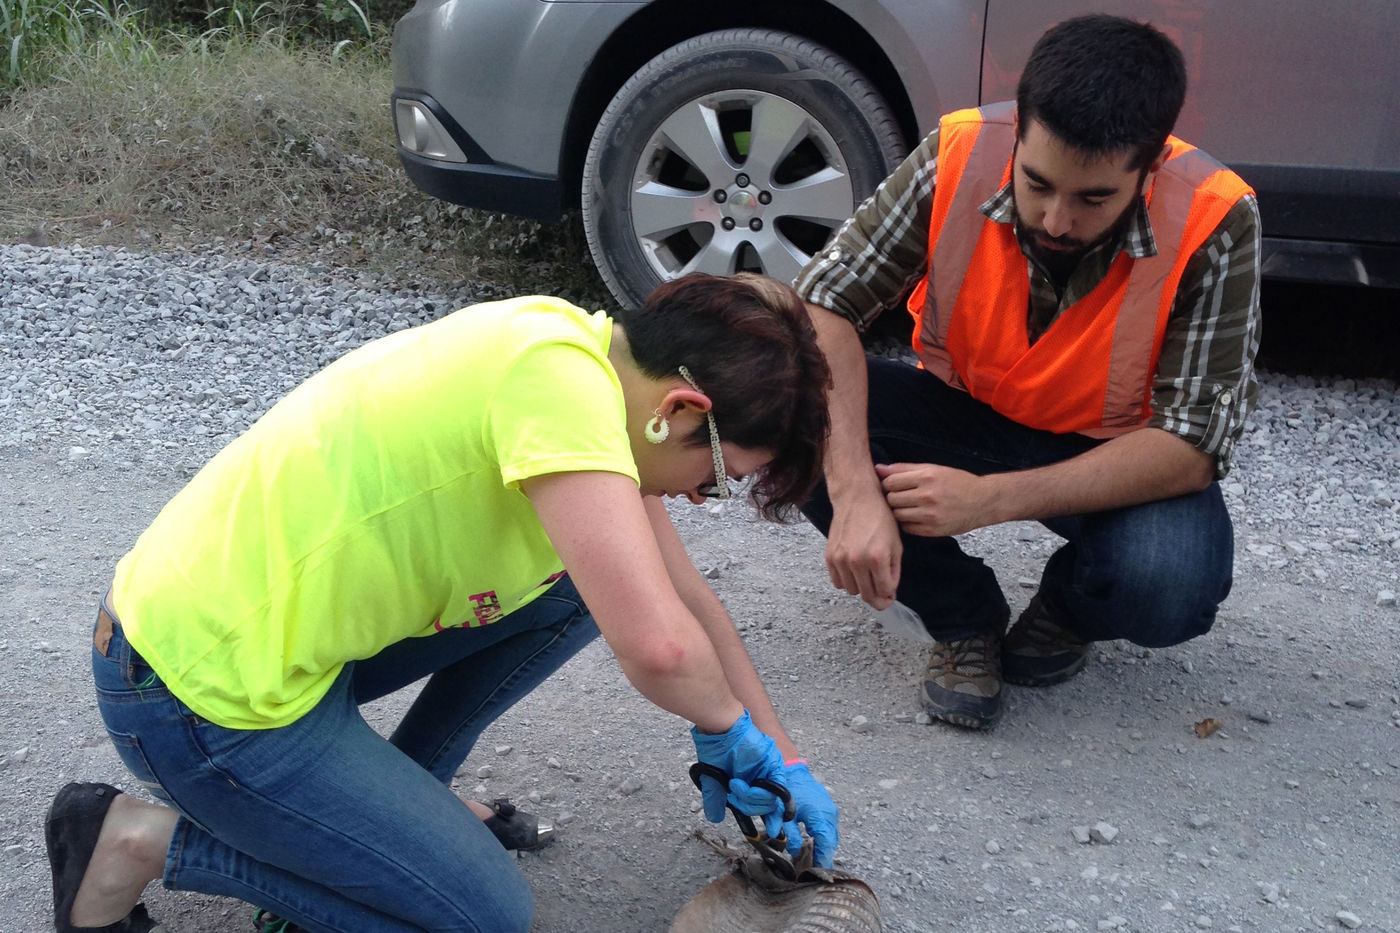 Two individuals crouch at the side of the road to examine roadkill. A woman appears on the left, with her gloves hands cutting into the neck of the animal with scissors. A man looks on from the right. He wears a reflective safety vest.